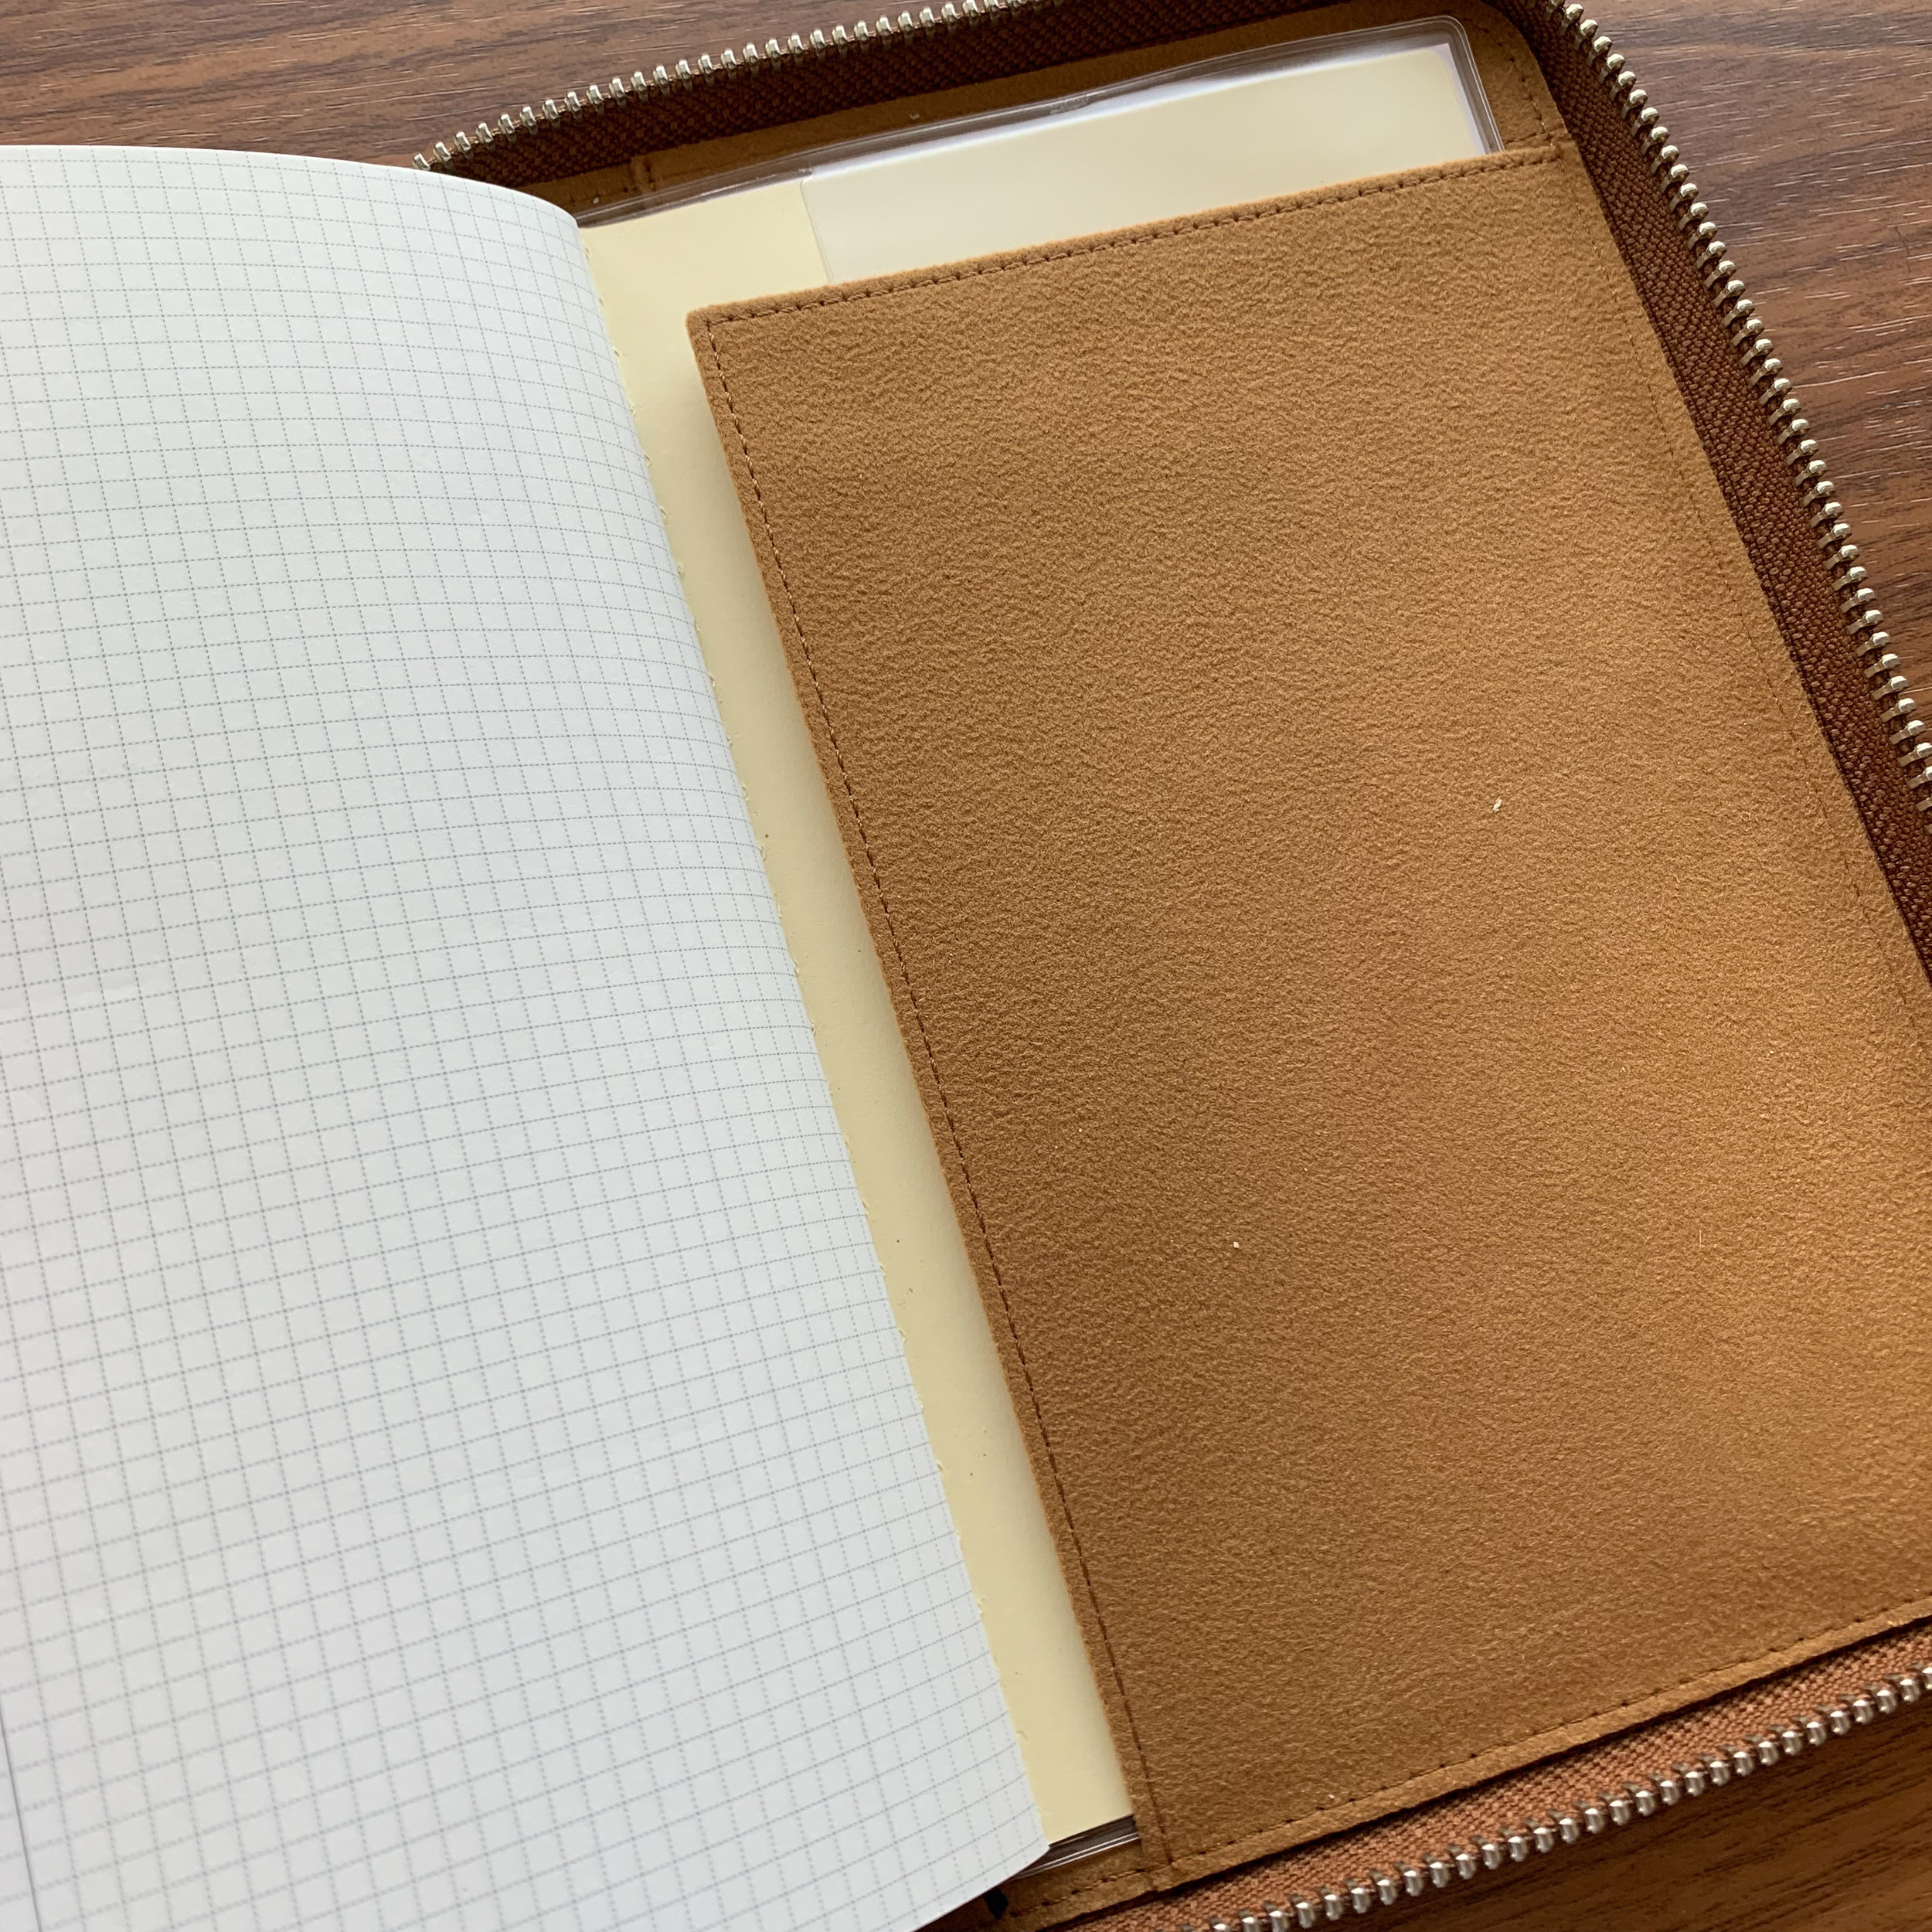 Notebooks are easy to switch out. The back of the Zipfolio contains a soft leather flap, under which you insert the back cover of your notebook.